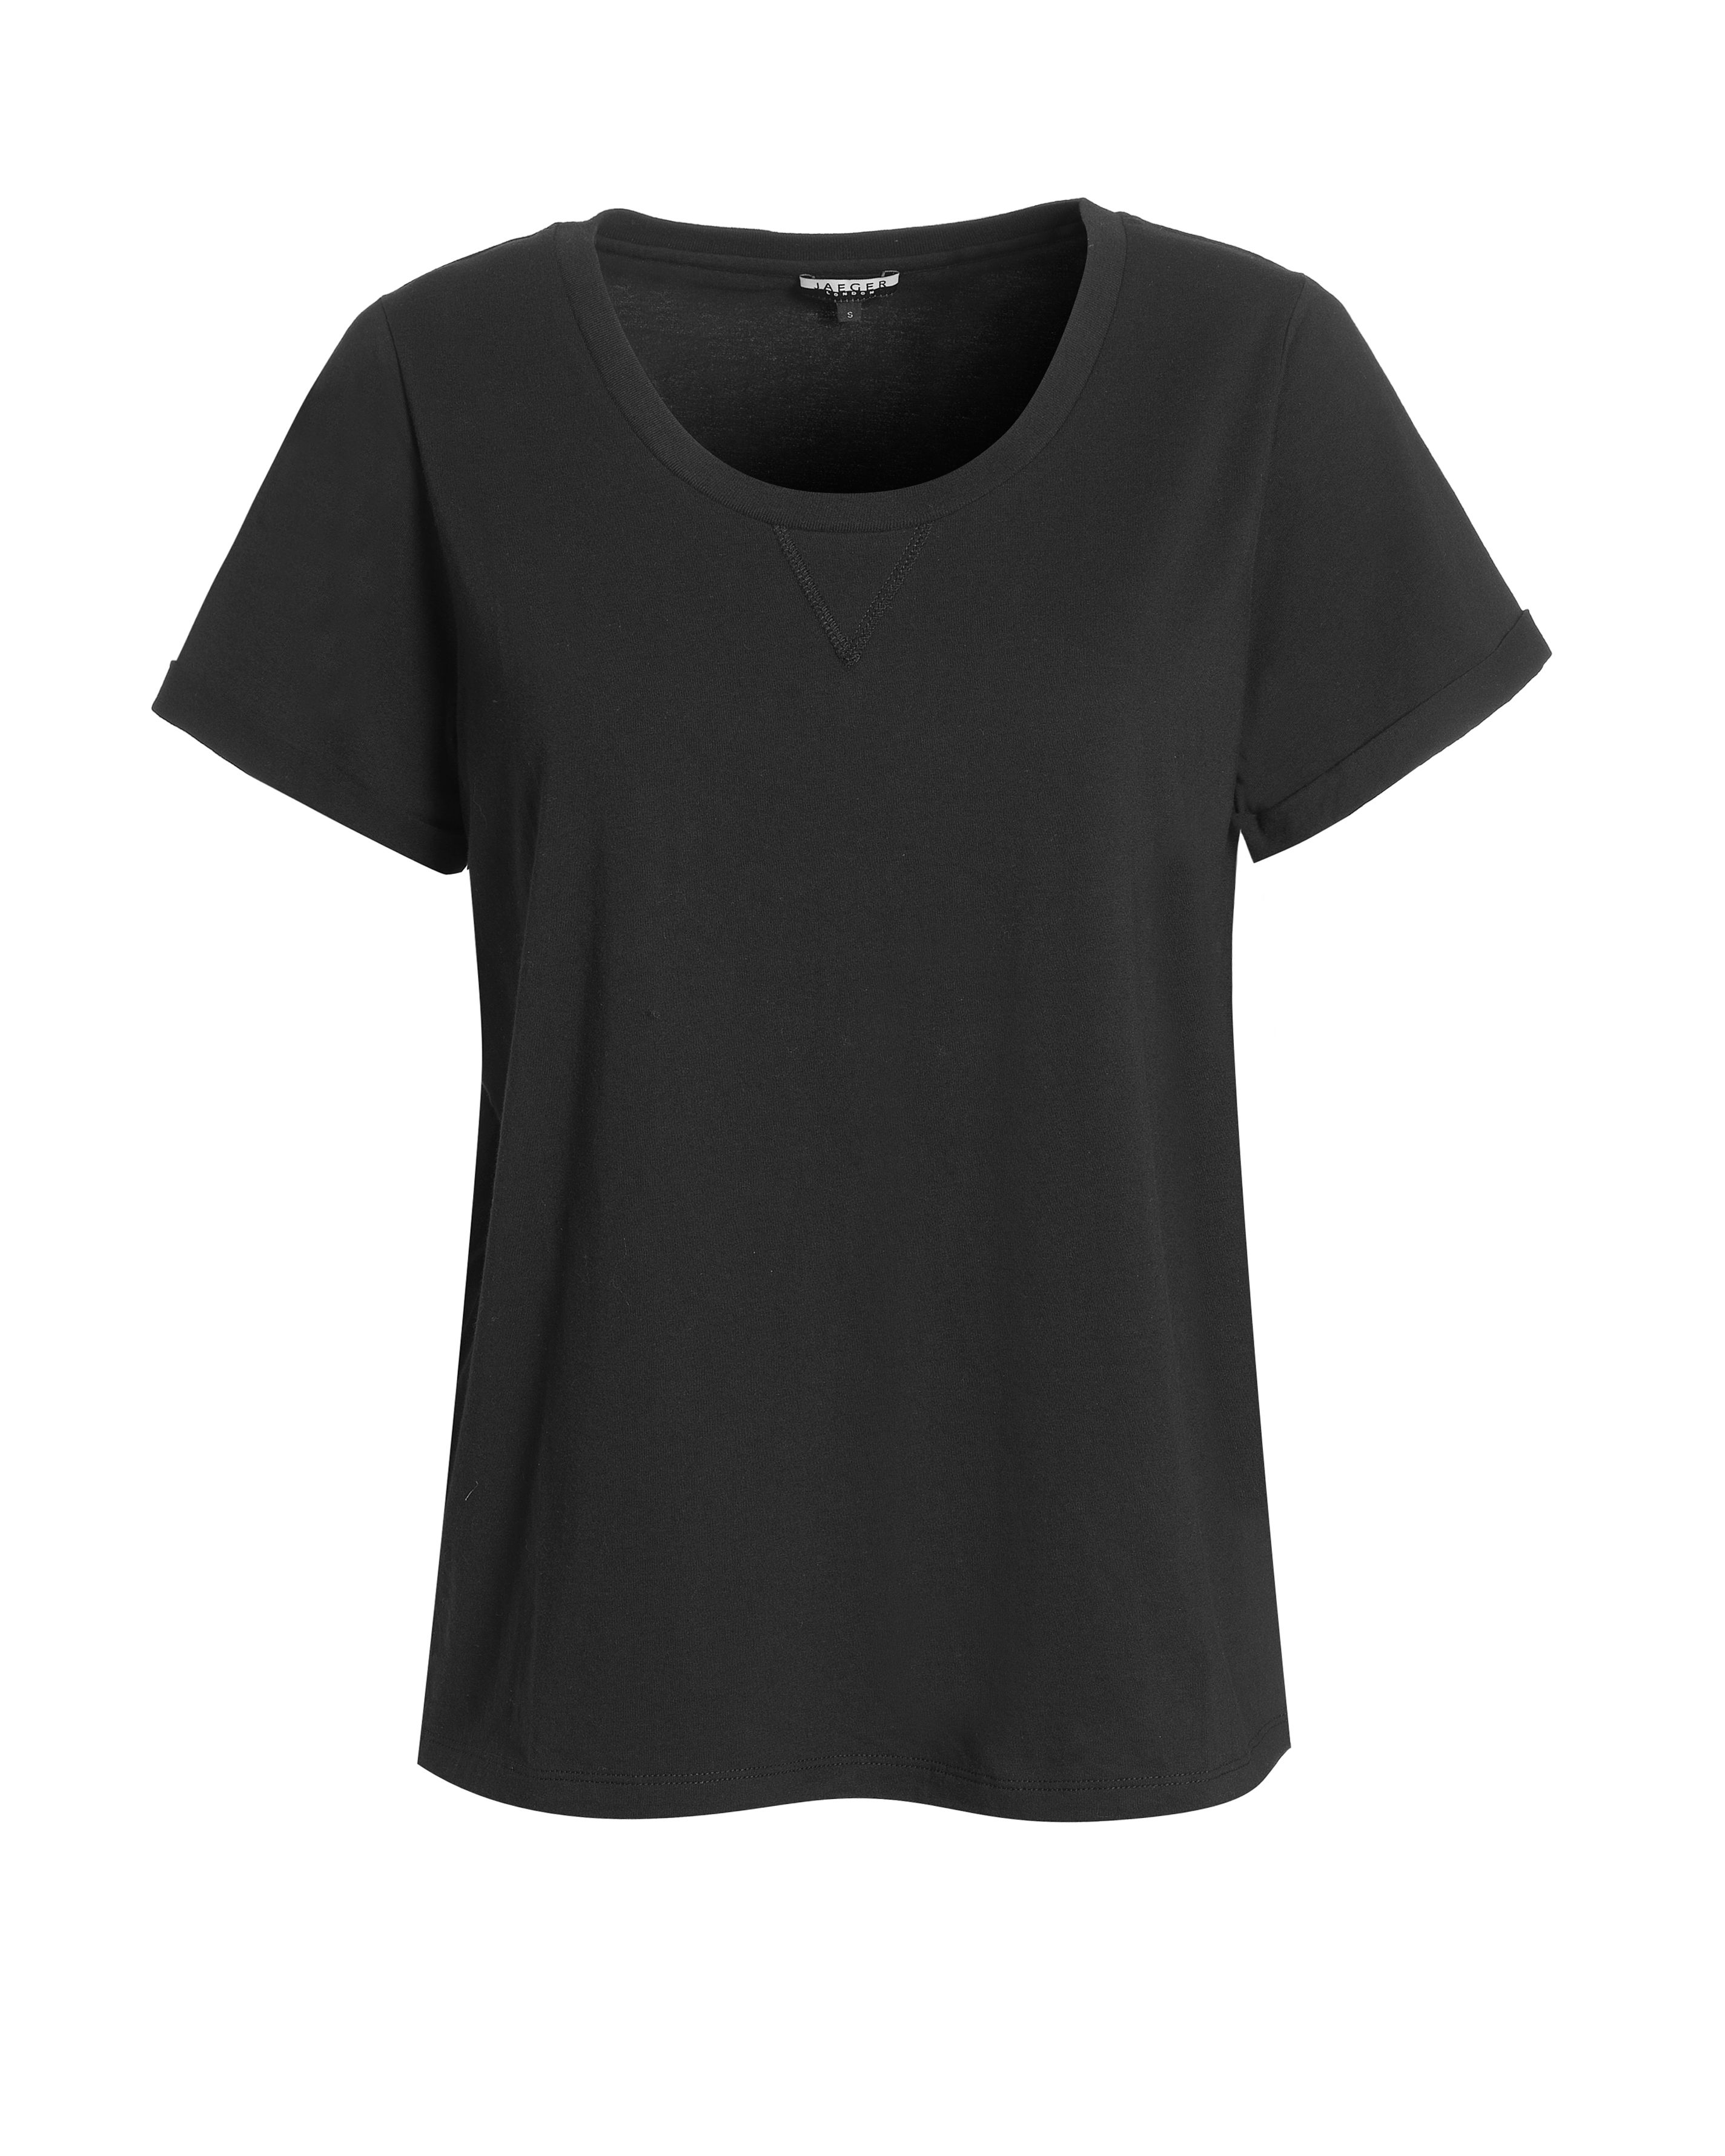 Jaeger Roll sleeve t-shirt - Black L,XS,S product image